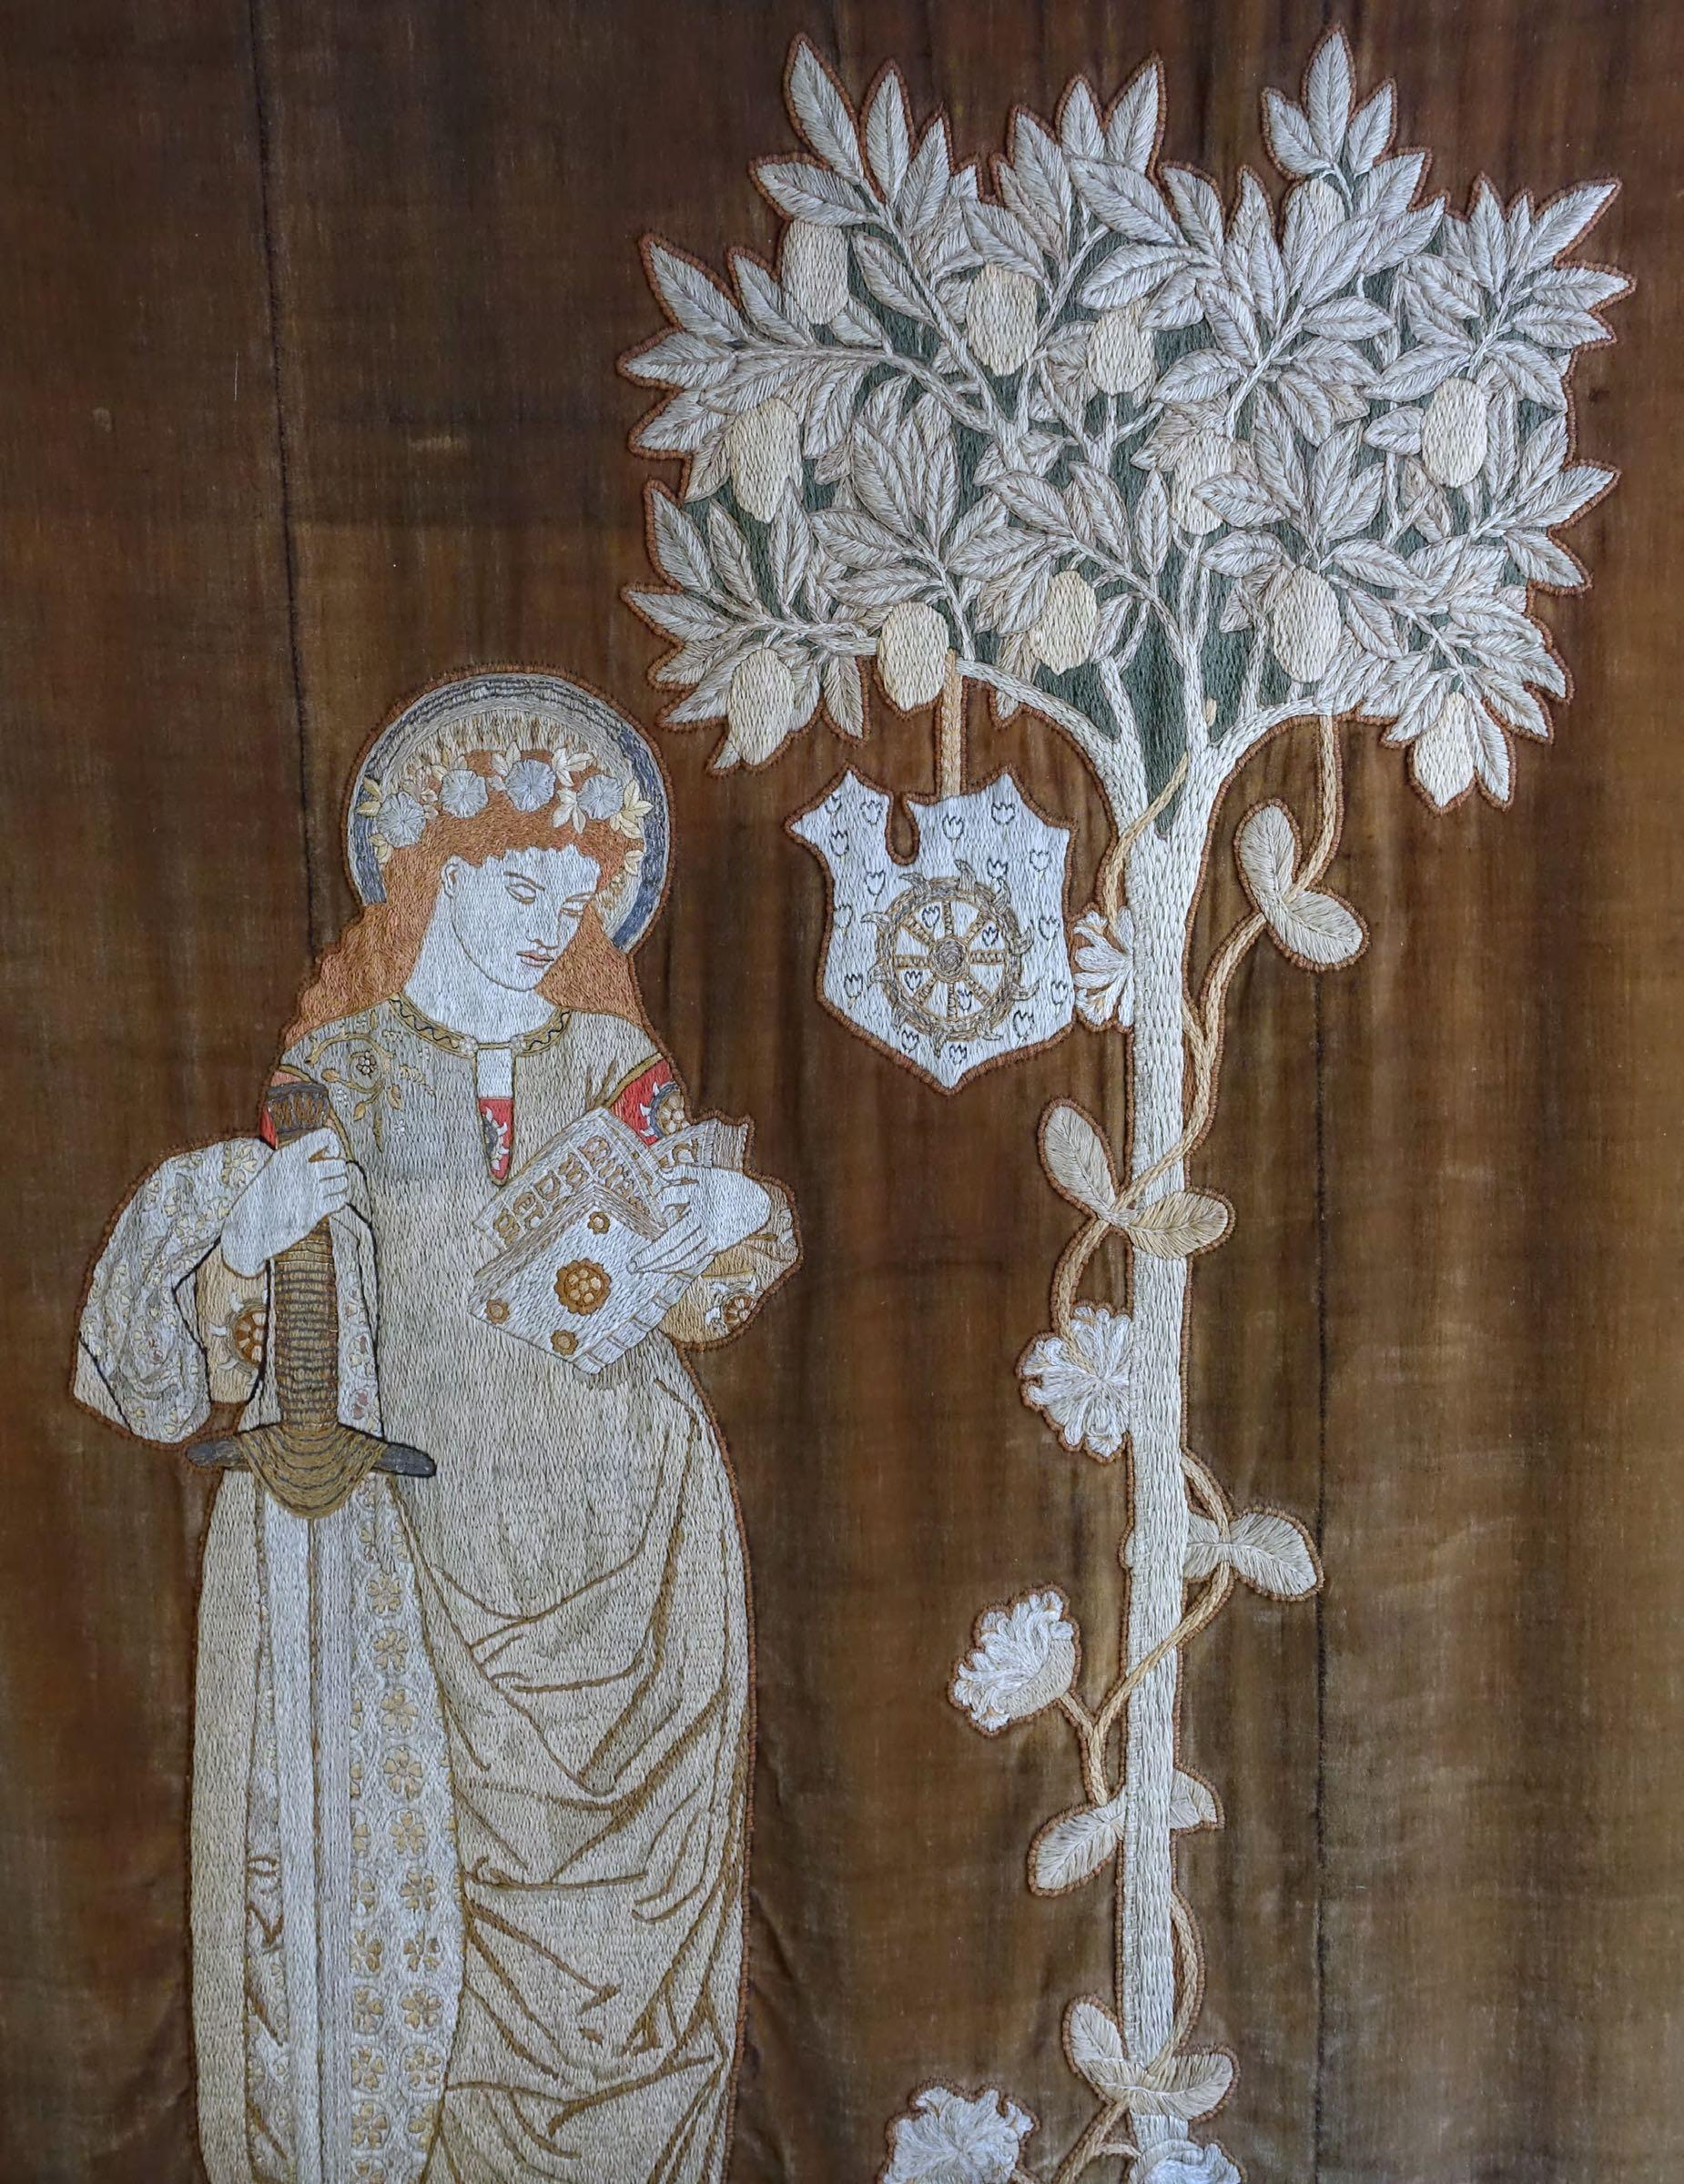 St. Catherine wall hanging, designed by William Morris, worked by Jane Morris, 1860-1861. Wikimedia Commons.